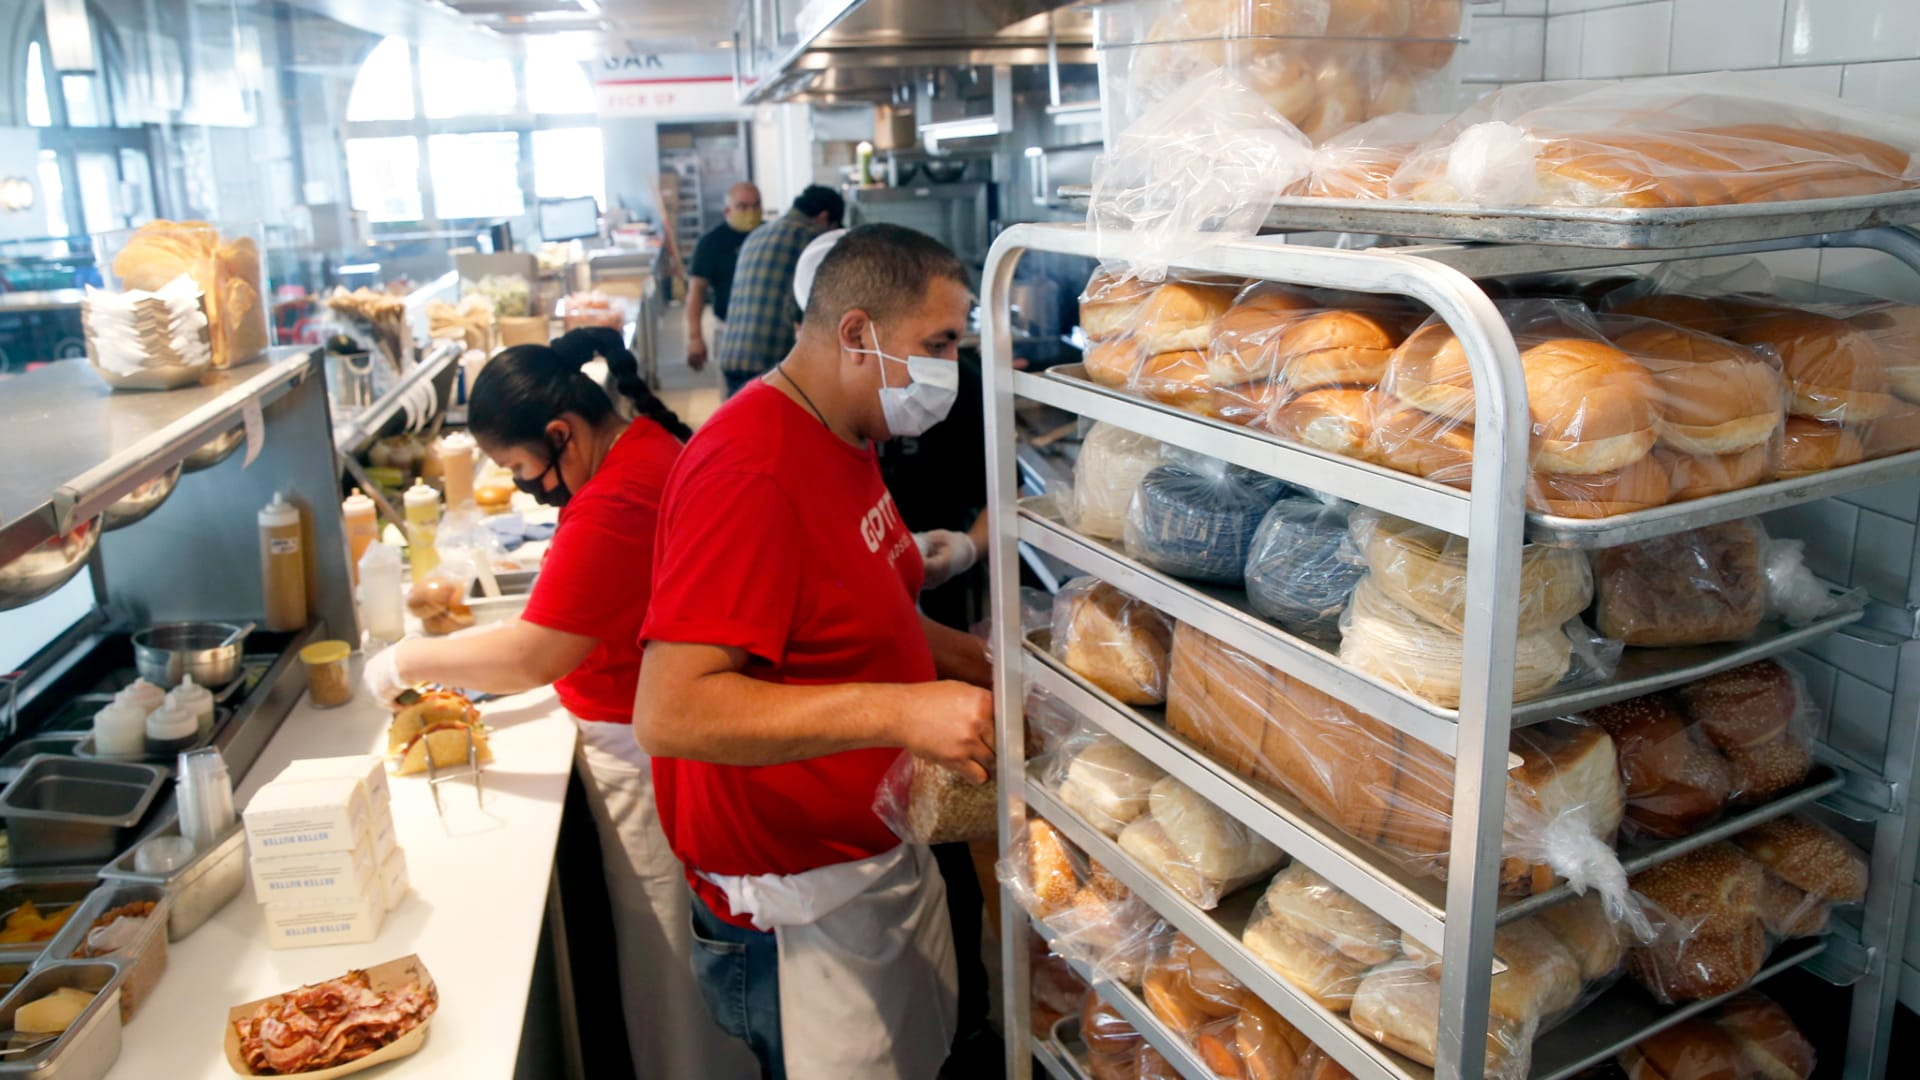 The kitchen staff prepares lunches at Gott's Roadside restaurant at the Ferry Building in San Francisco on Saturday, May 2, 2020.